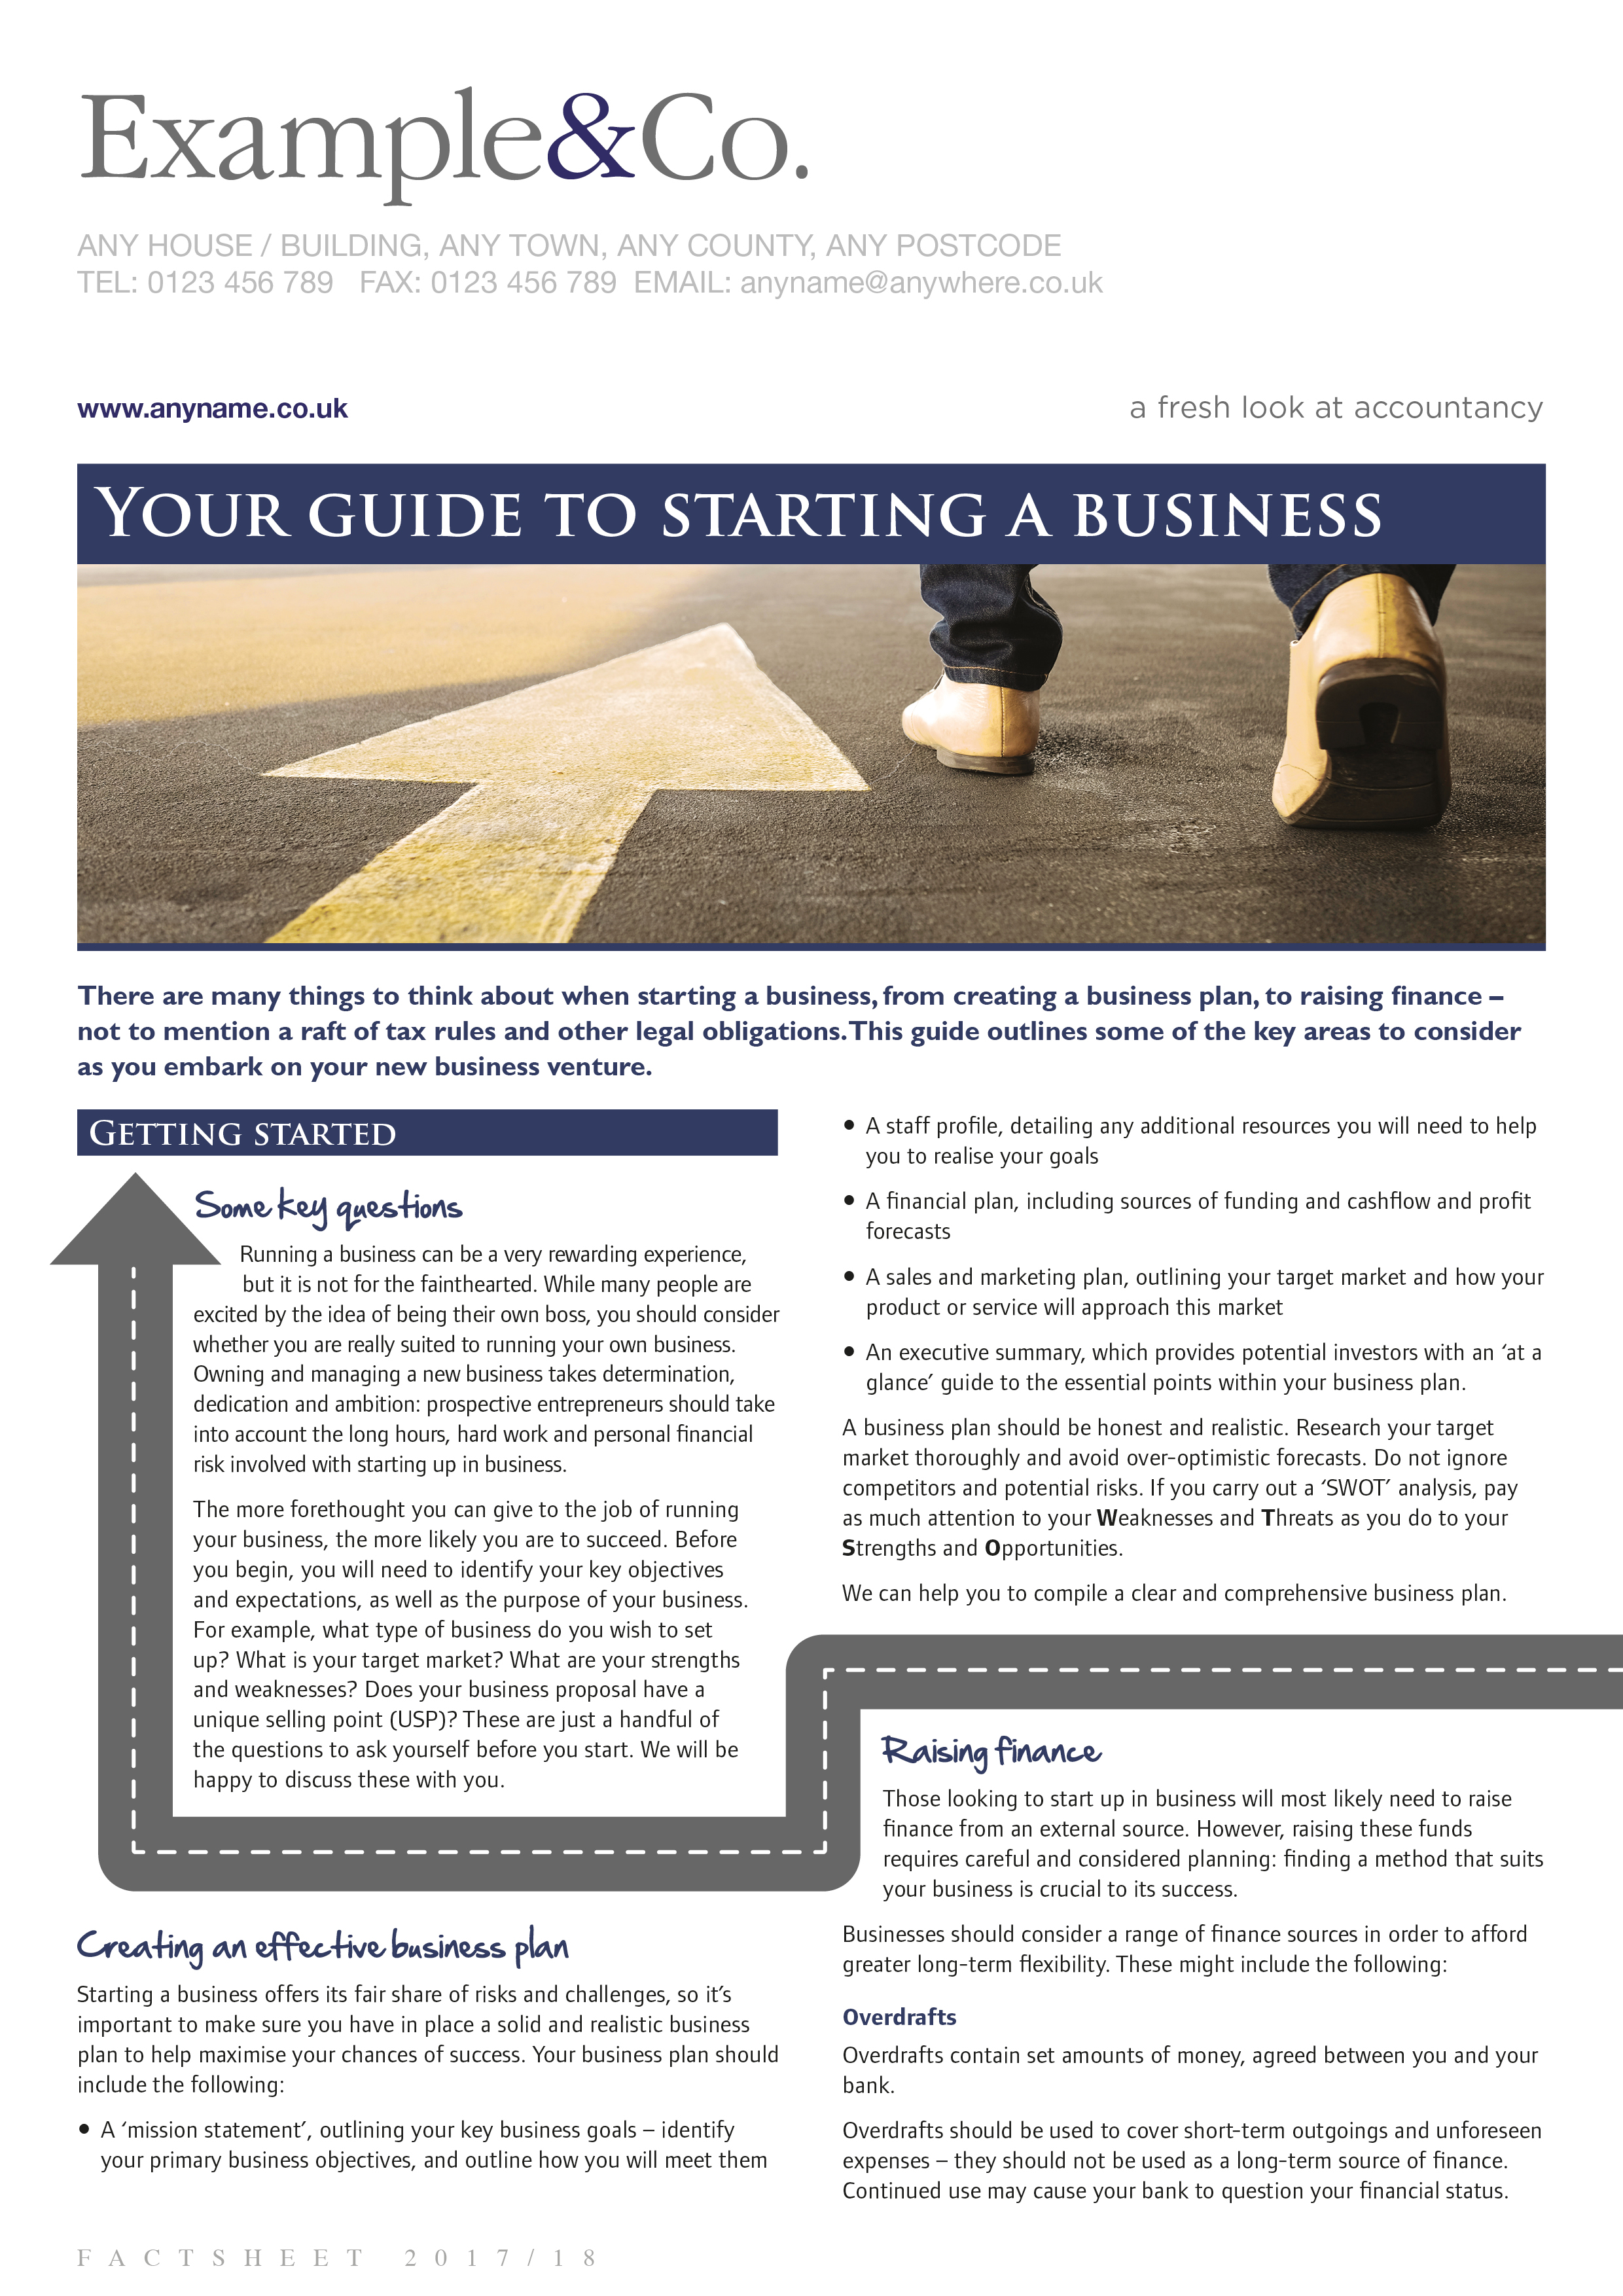 Your guide to starting a business